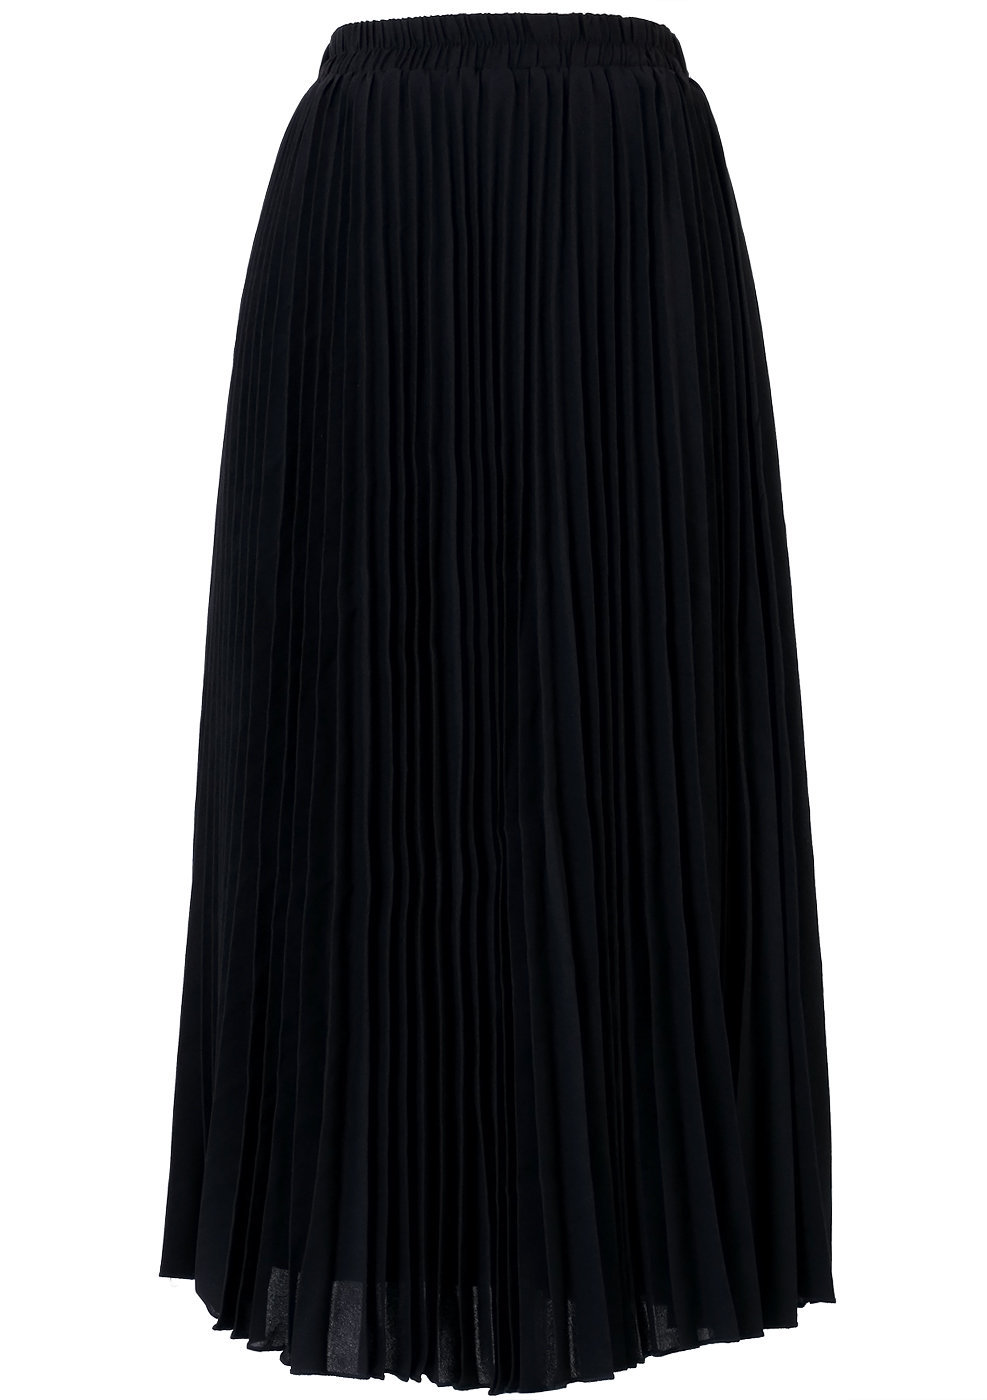 black pleated maxi skirt black s from chicwish